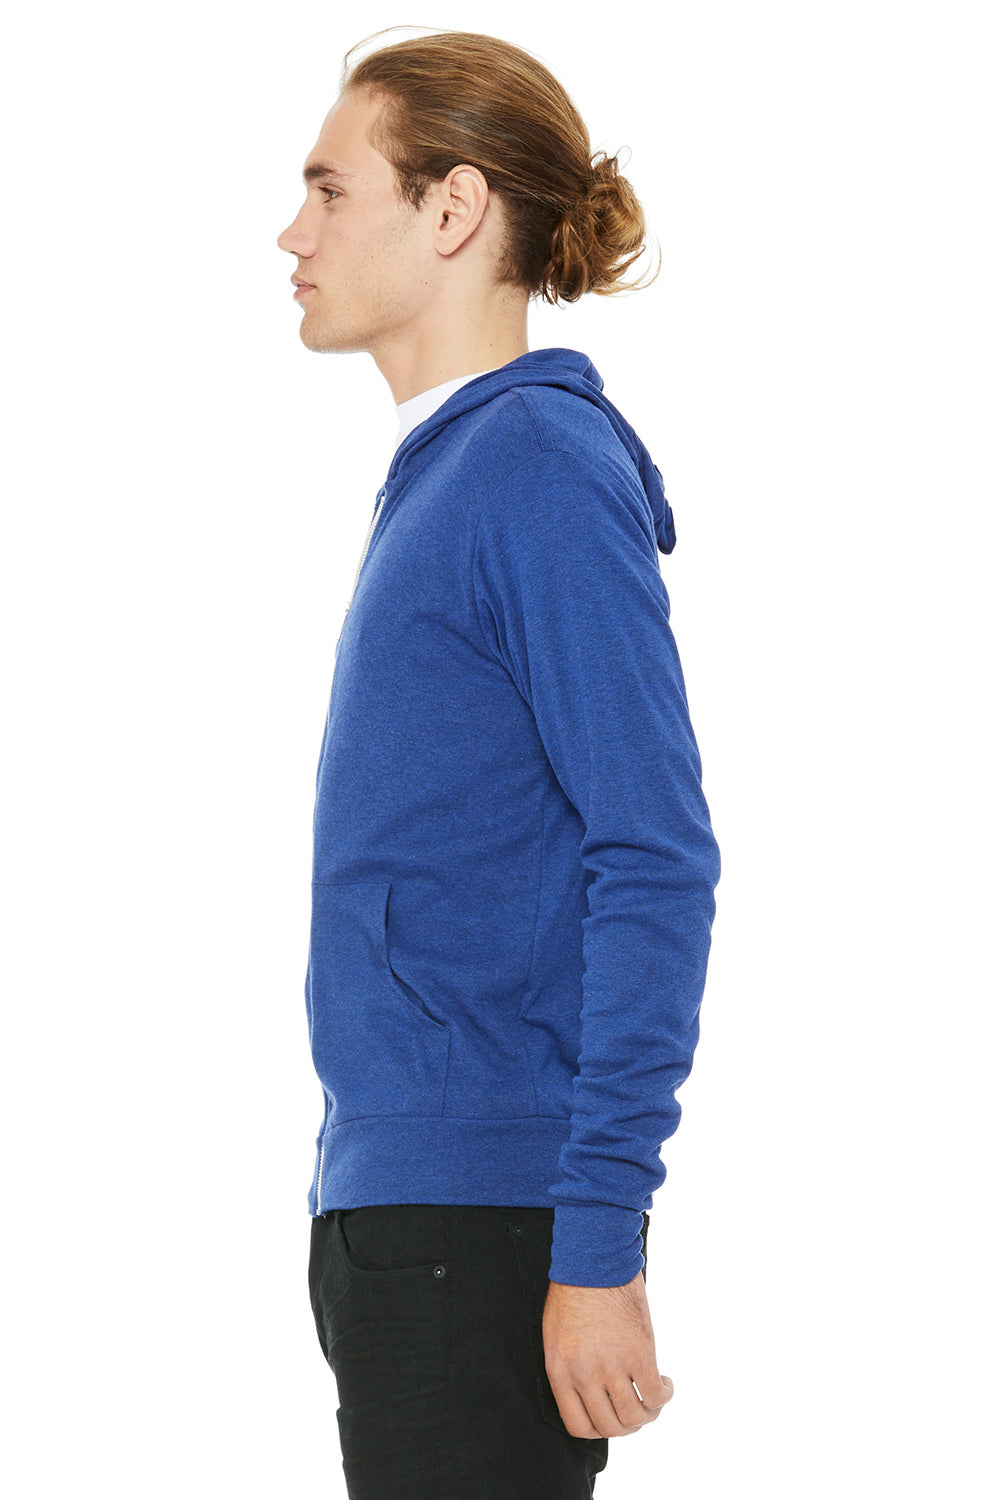 Bella + Canvas 3939 Mens Full Zip Long Sleeve Hooded T-Shirt Hoodie Royal Blue Side